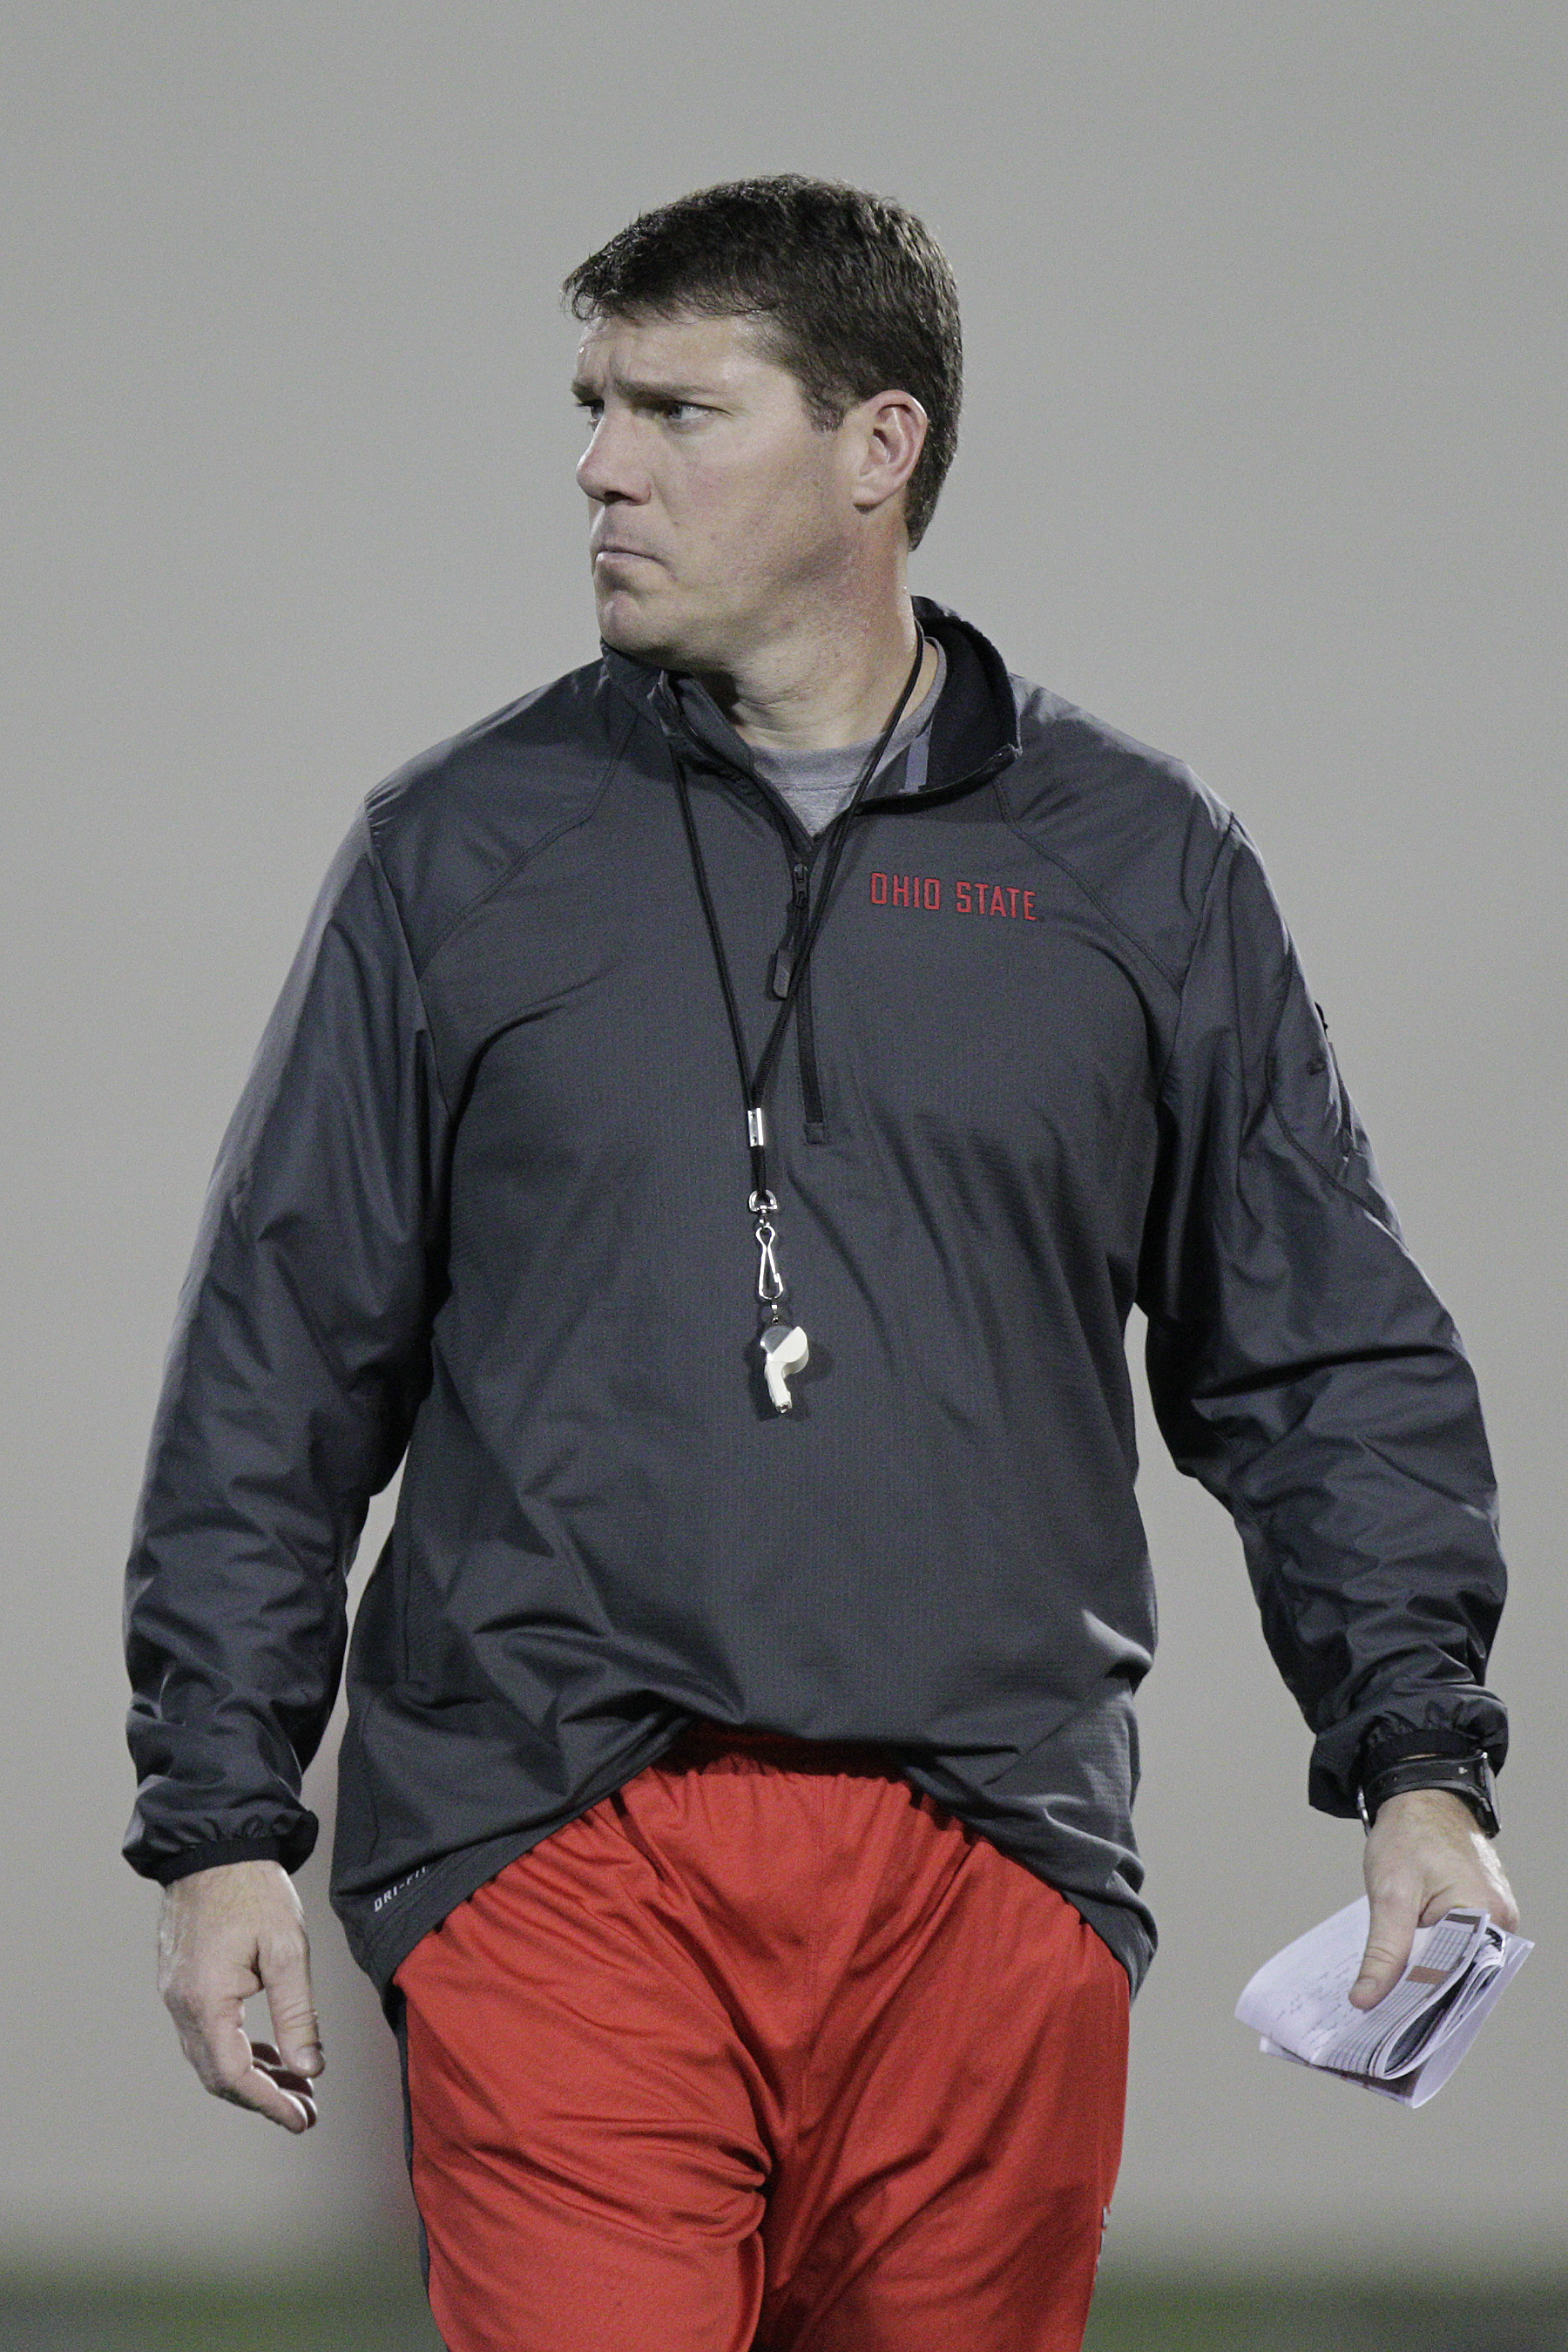 Ohio State co-defensive coordinator and safeties coach Chris Ash instructs players during their Spring NCAA college football practice Tuesday, March 4, 2014, in Columbus, Ohio. (AP Photo/Jay LaPrete)